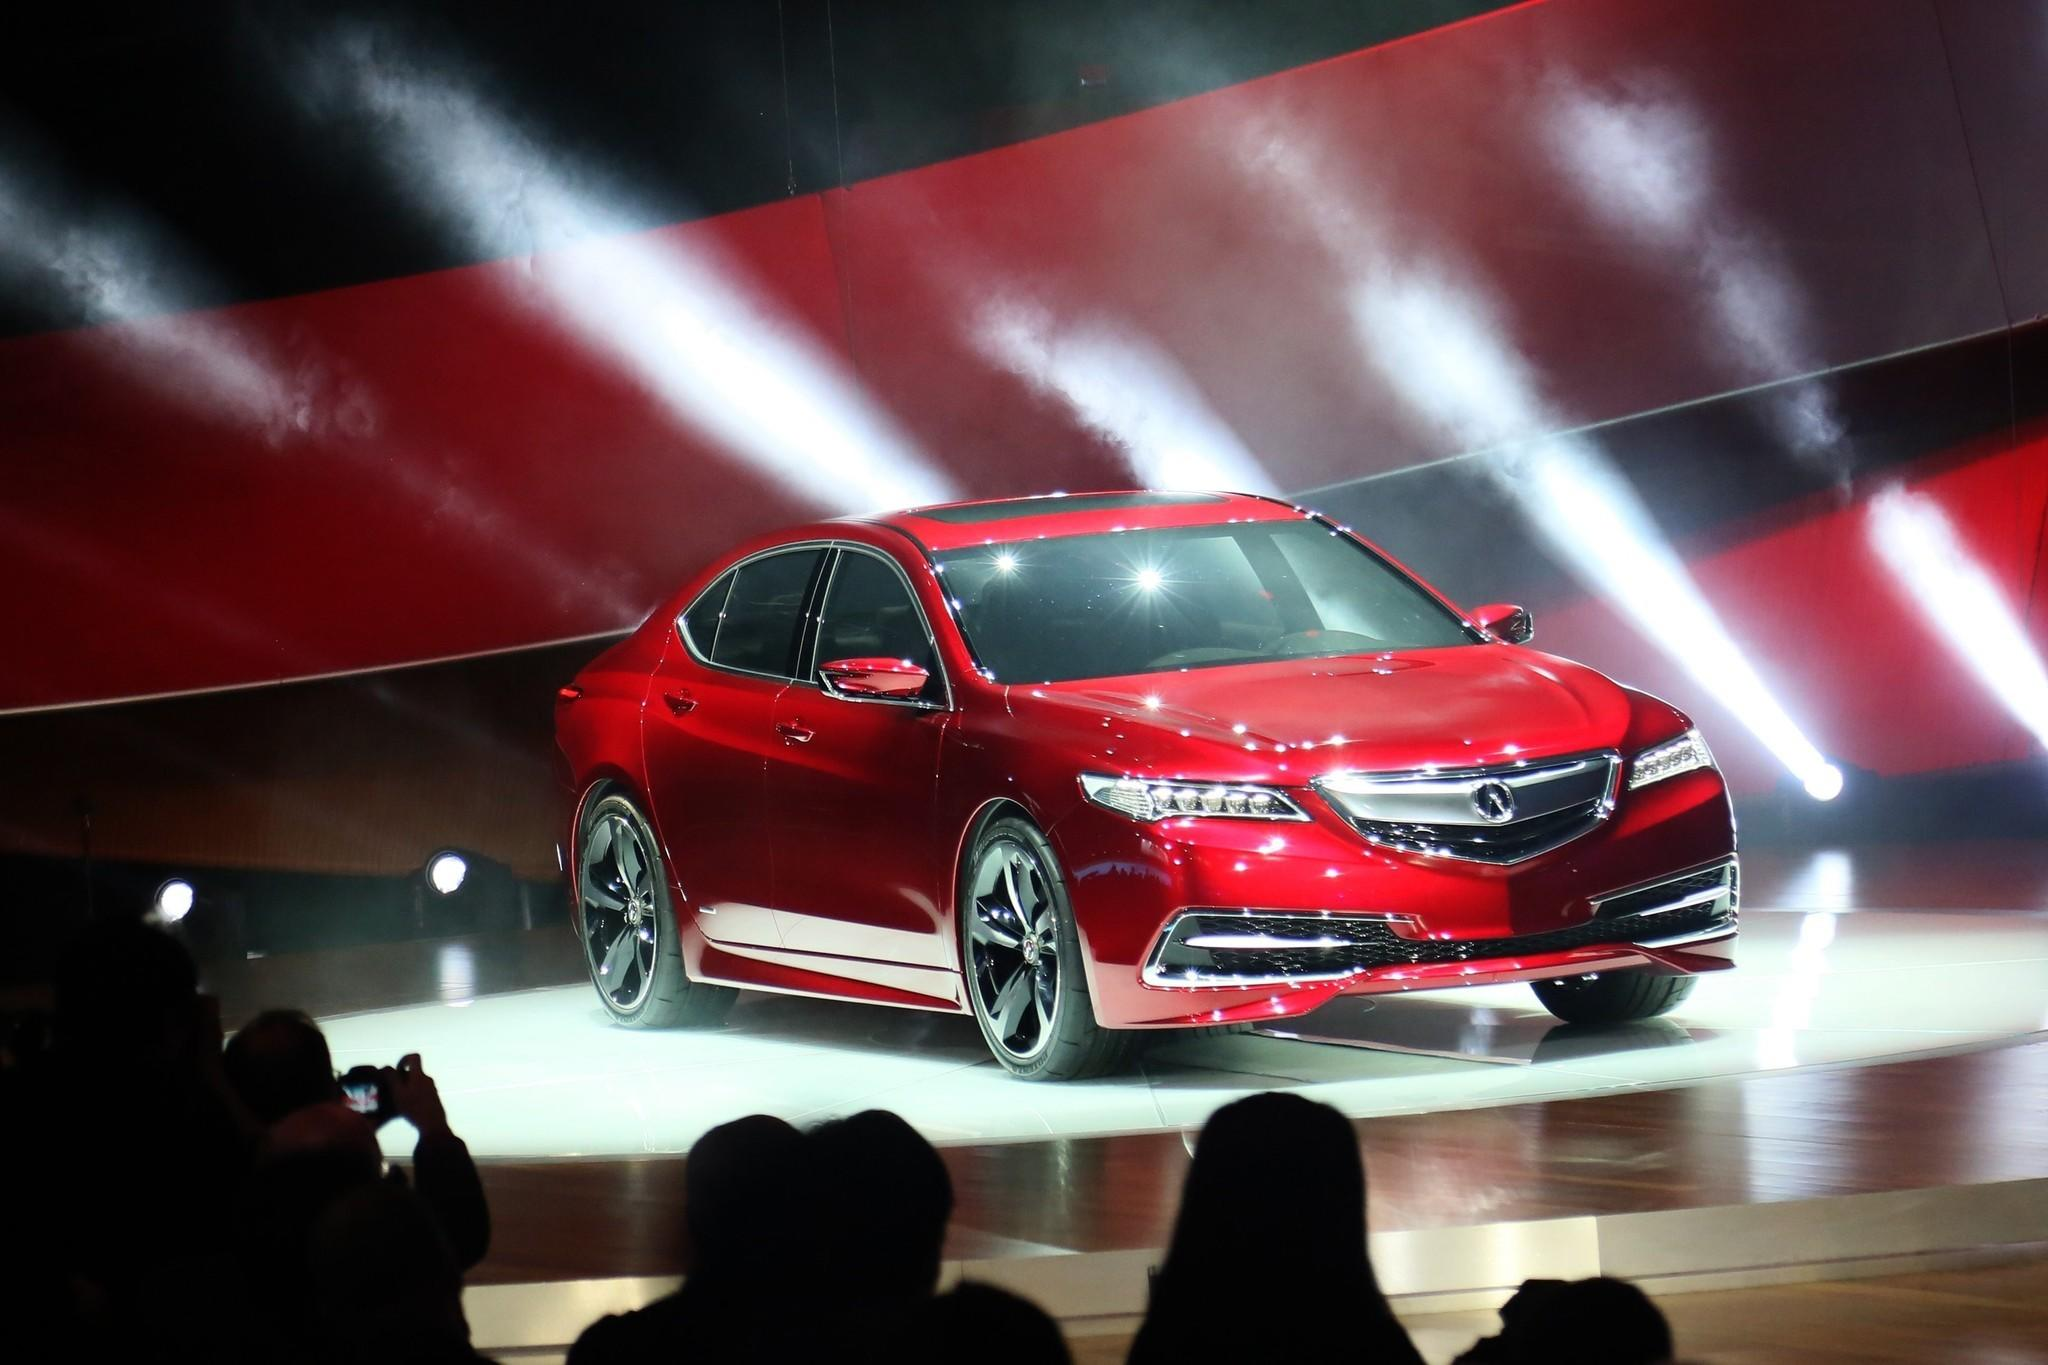 Honda Splits Acura Into Its Own Division To Revitalize Brand Latimes